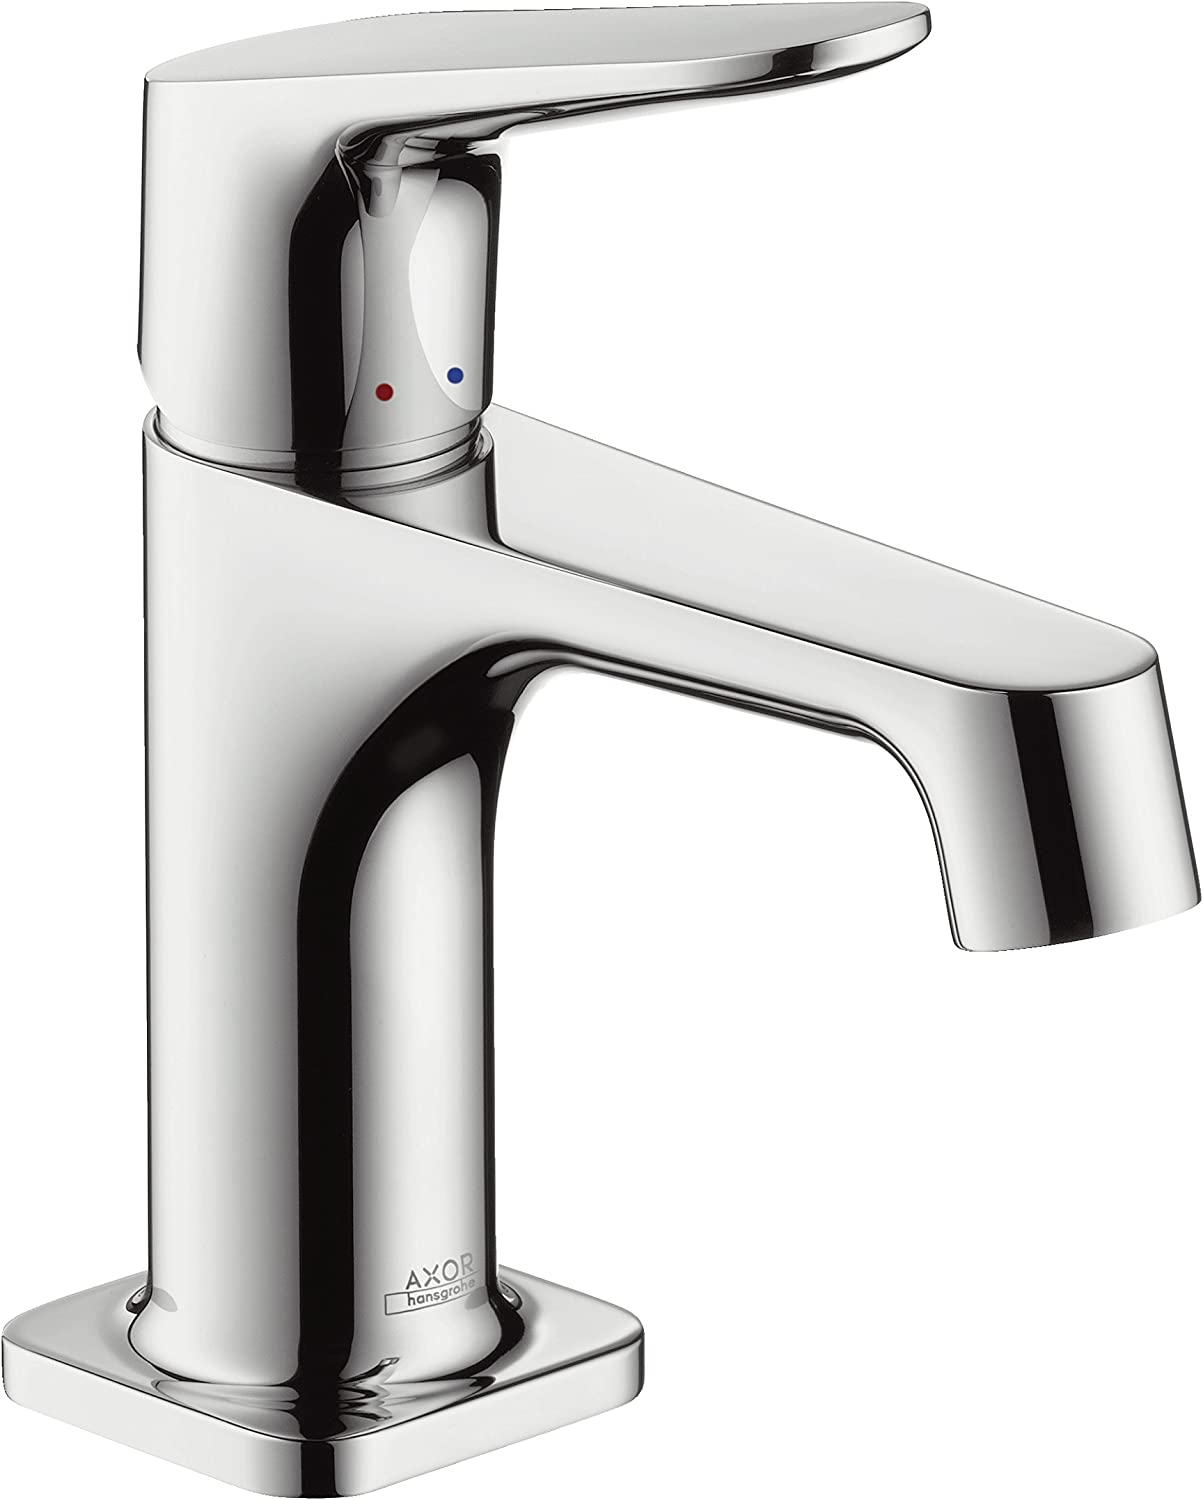 Mitigeur lave-main citterio chrom h grohe 34016000 Hansgrohe